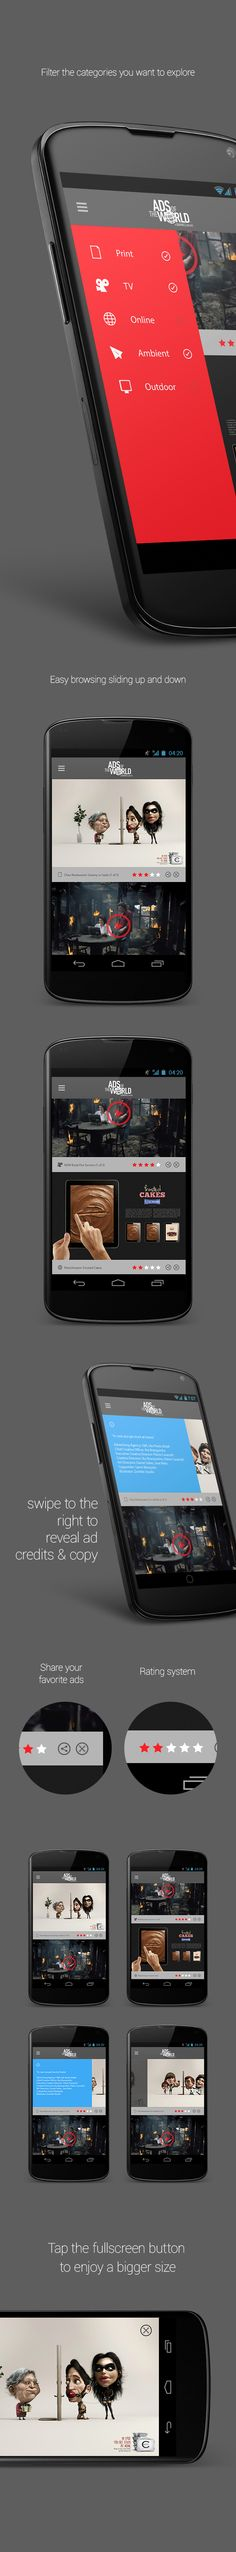 Ads of the world app by Sherif Adel, via Behance